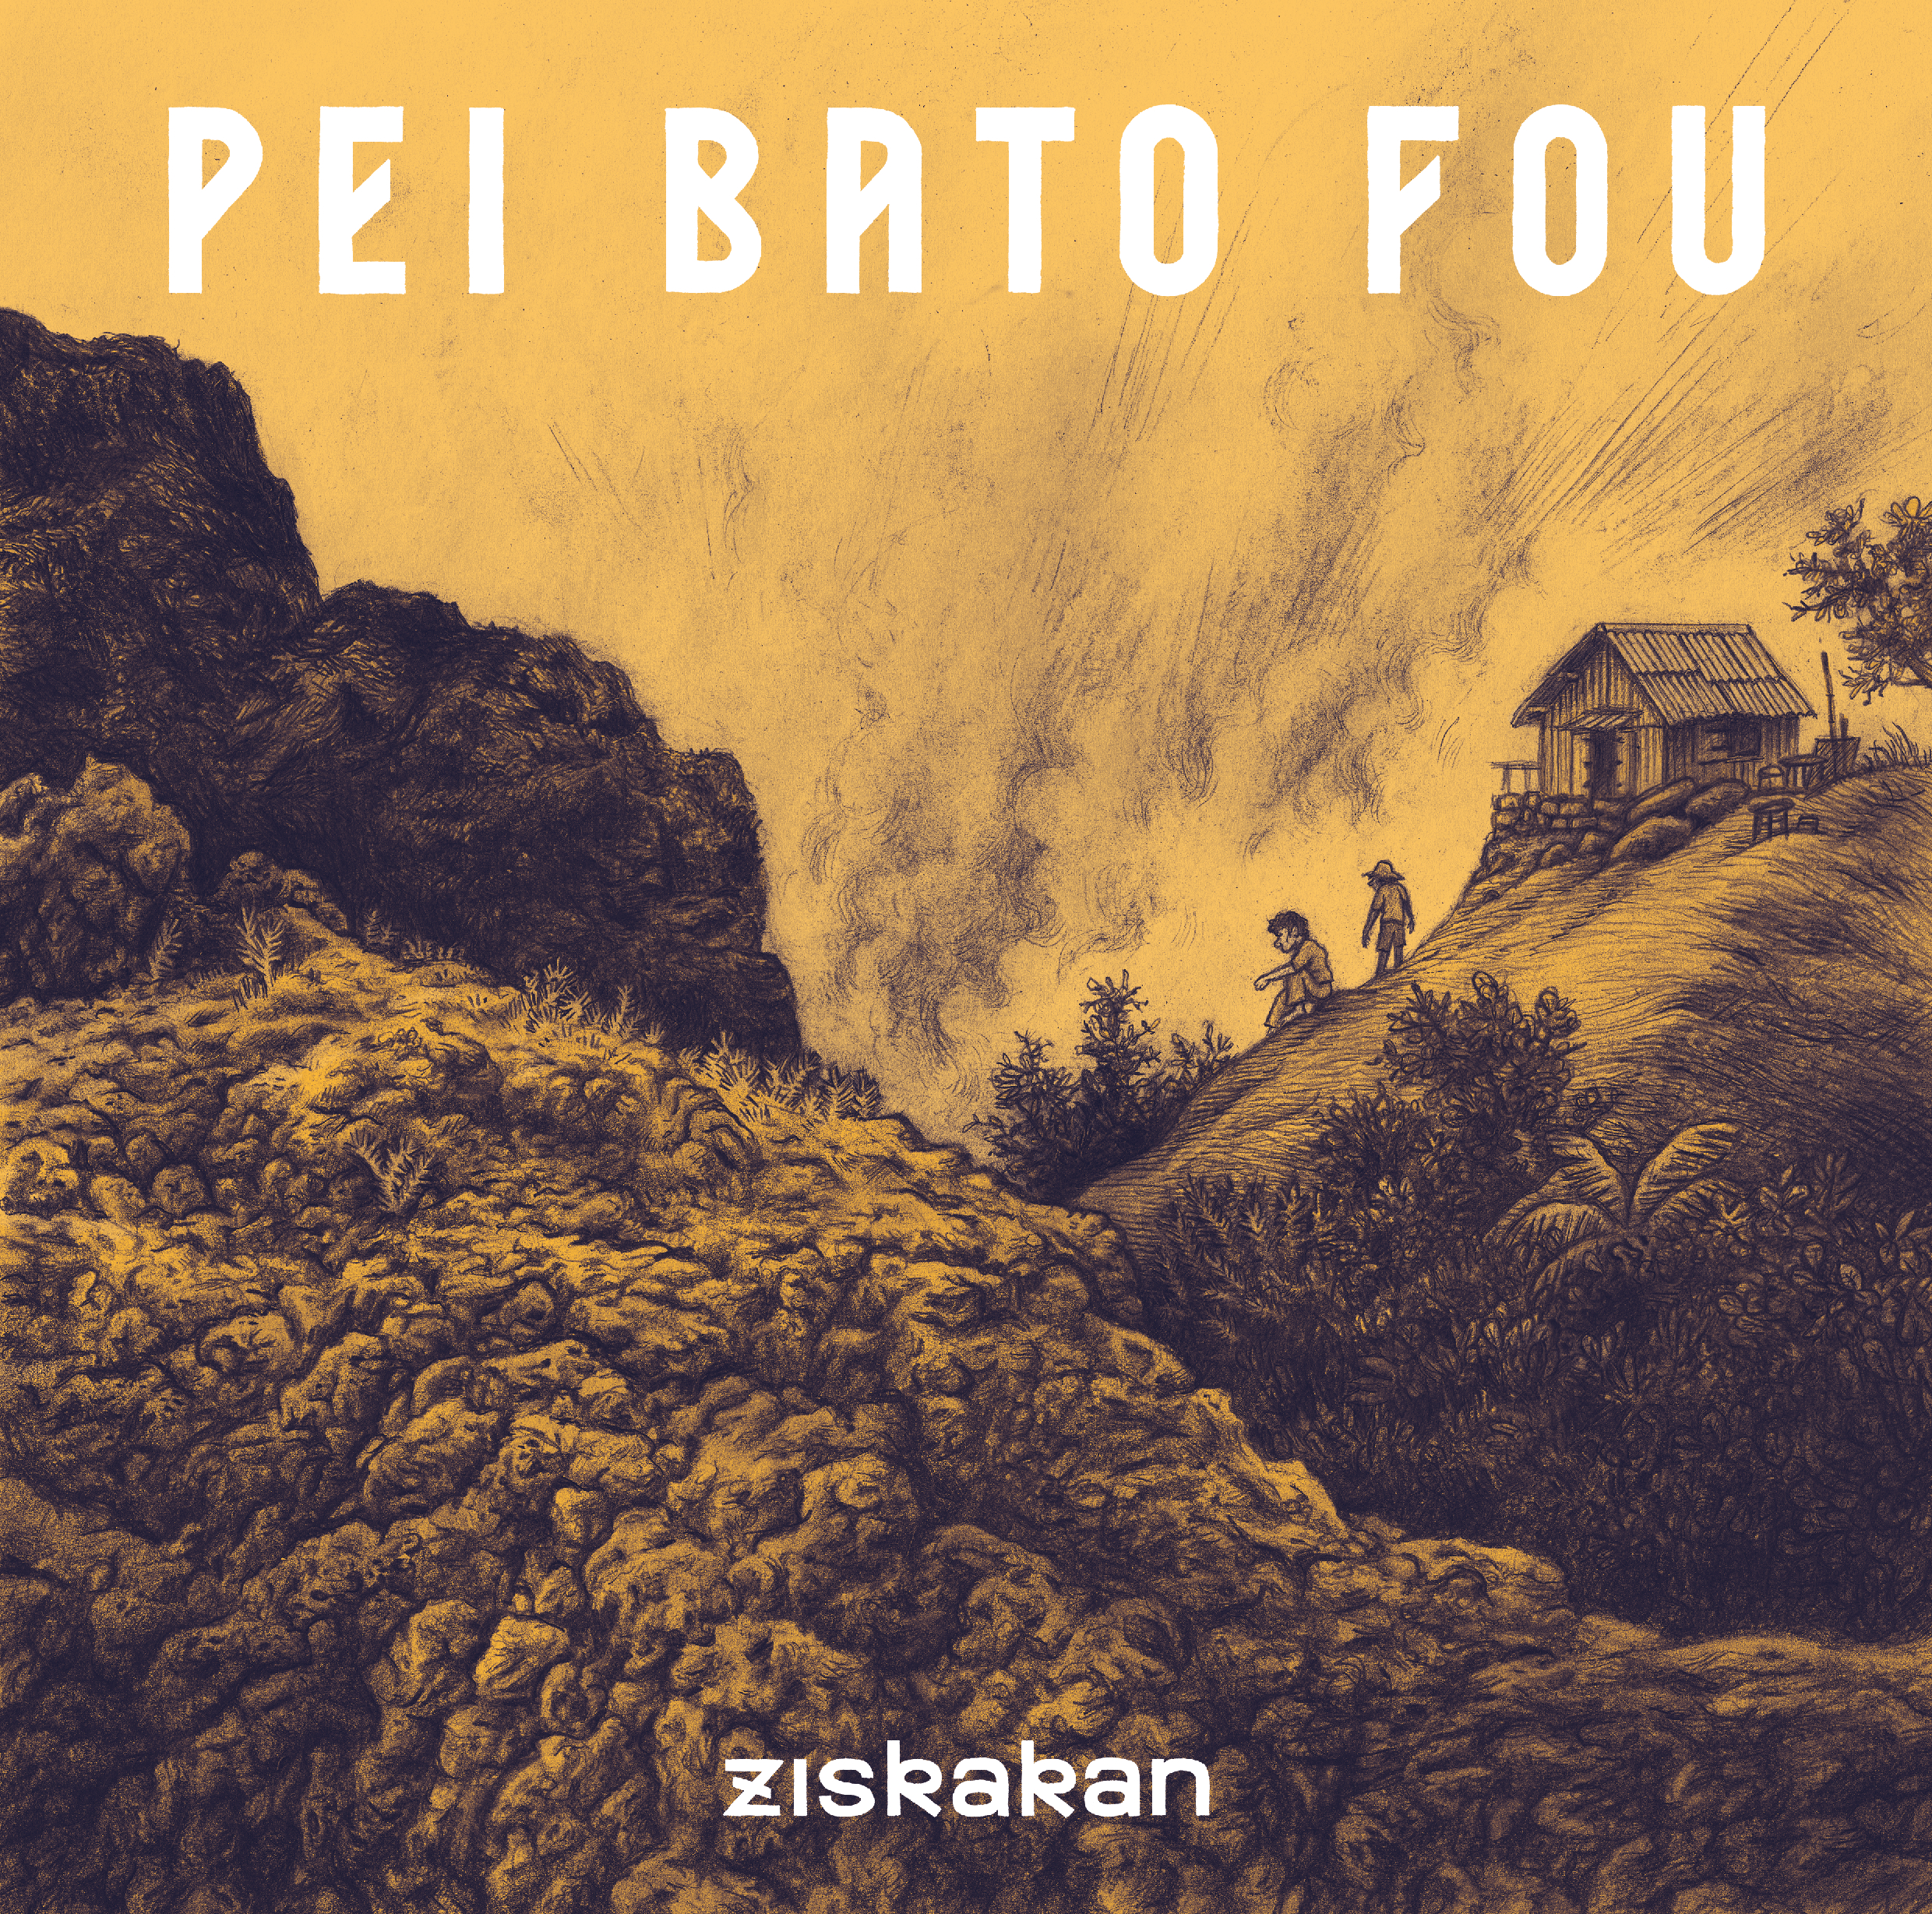 PEI BATO FOU is coming soon !!